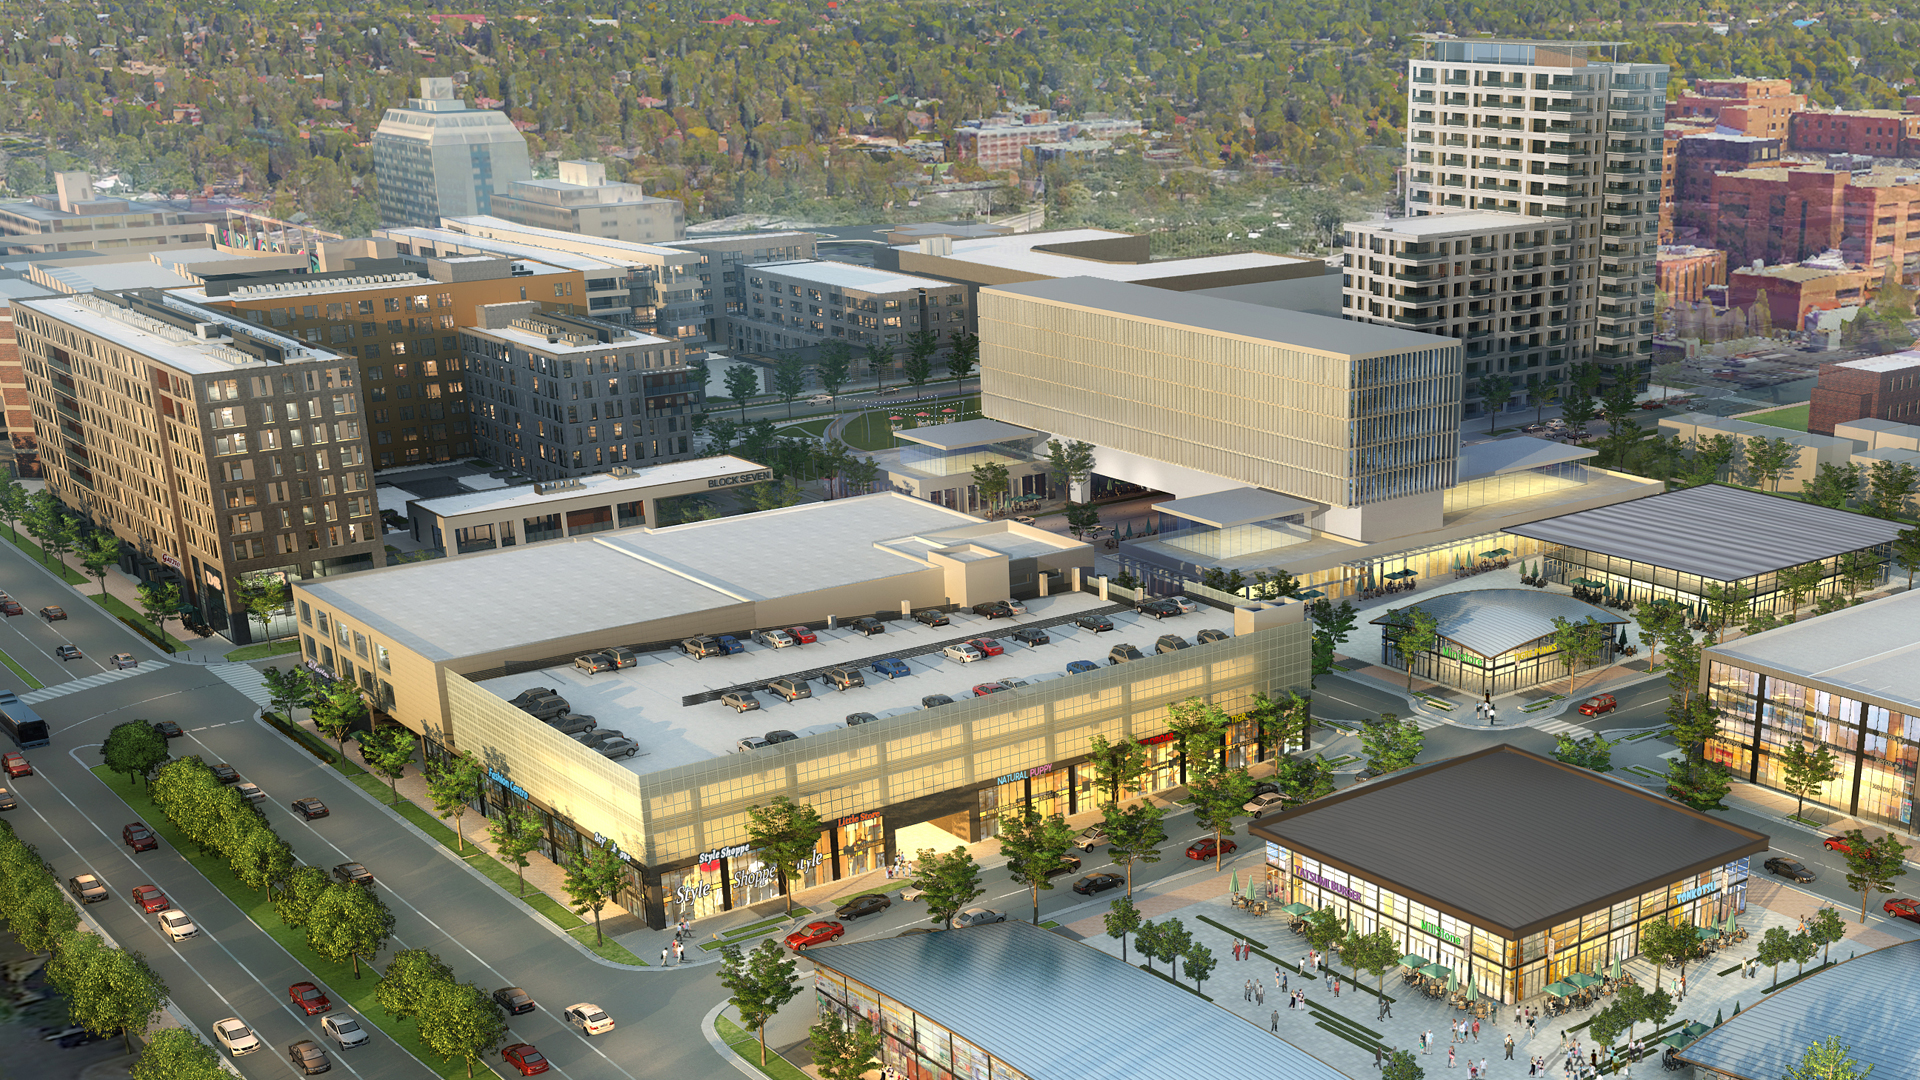 <p>Upon completion, 9th & Colorado will bring the communities surrounding this site an important new commercial center within walking and biking distance of some of central Denver's highest value residential neighborhoods.</p>